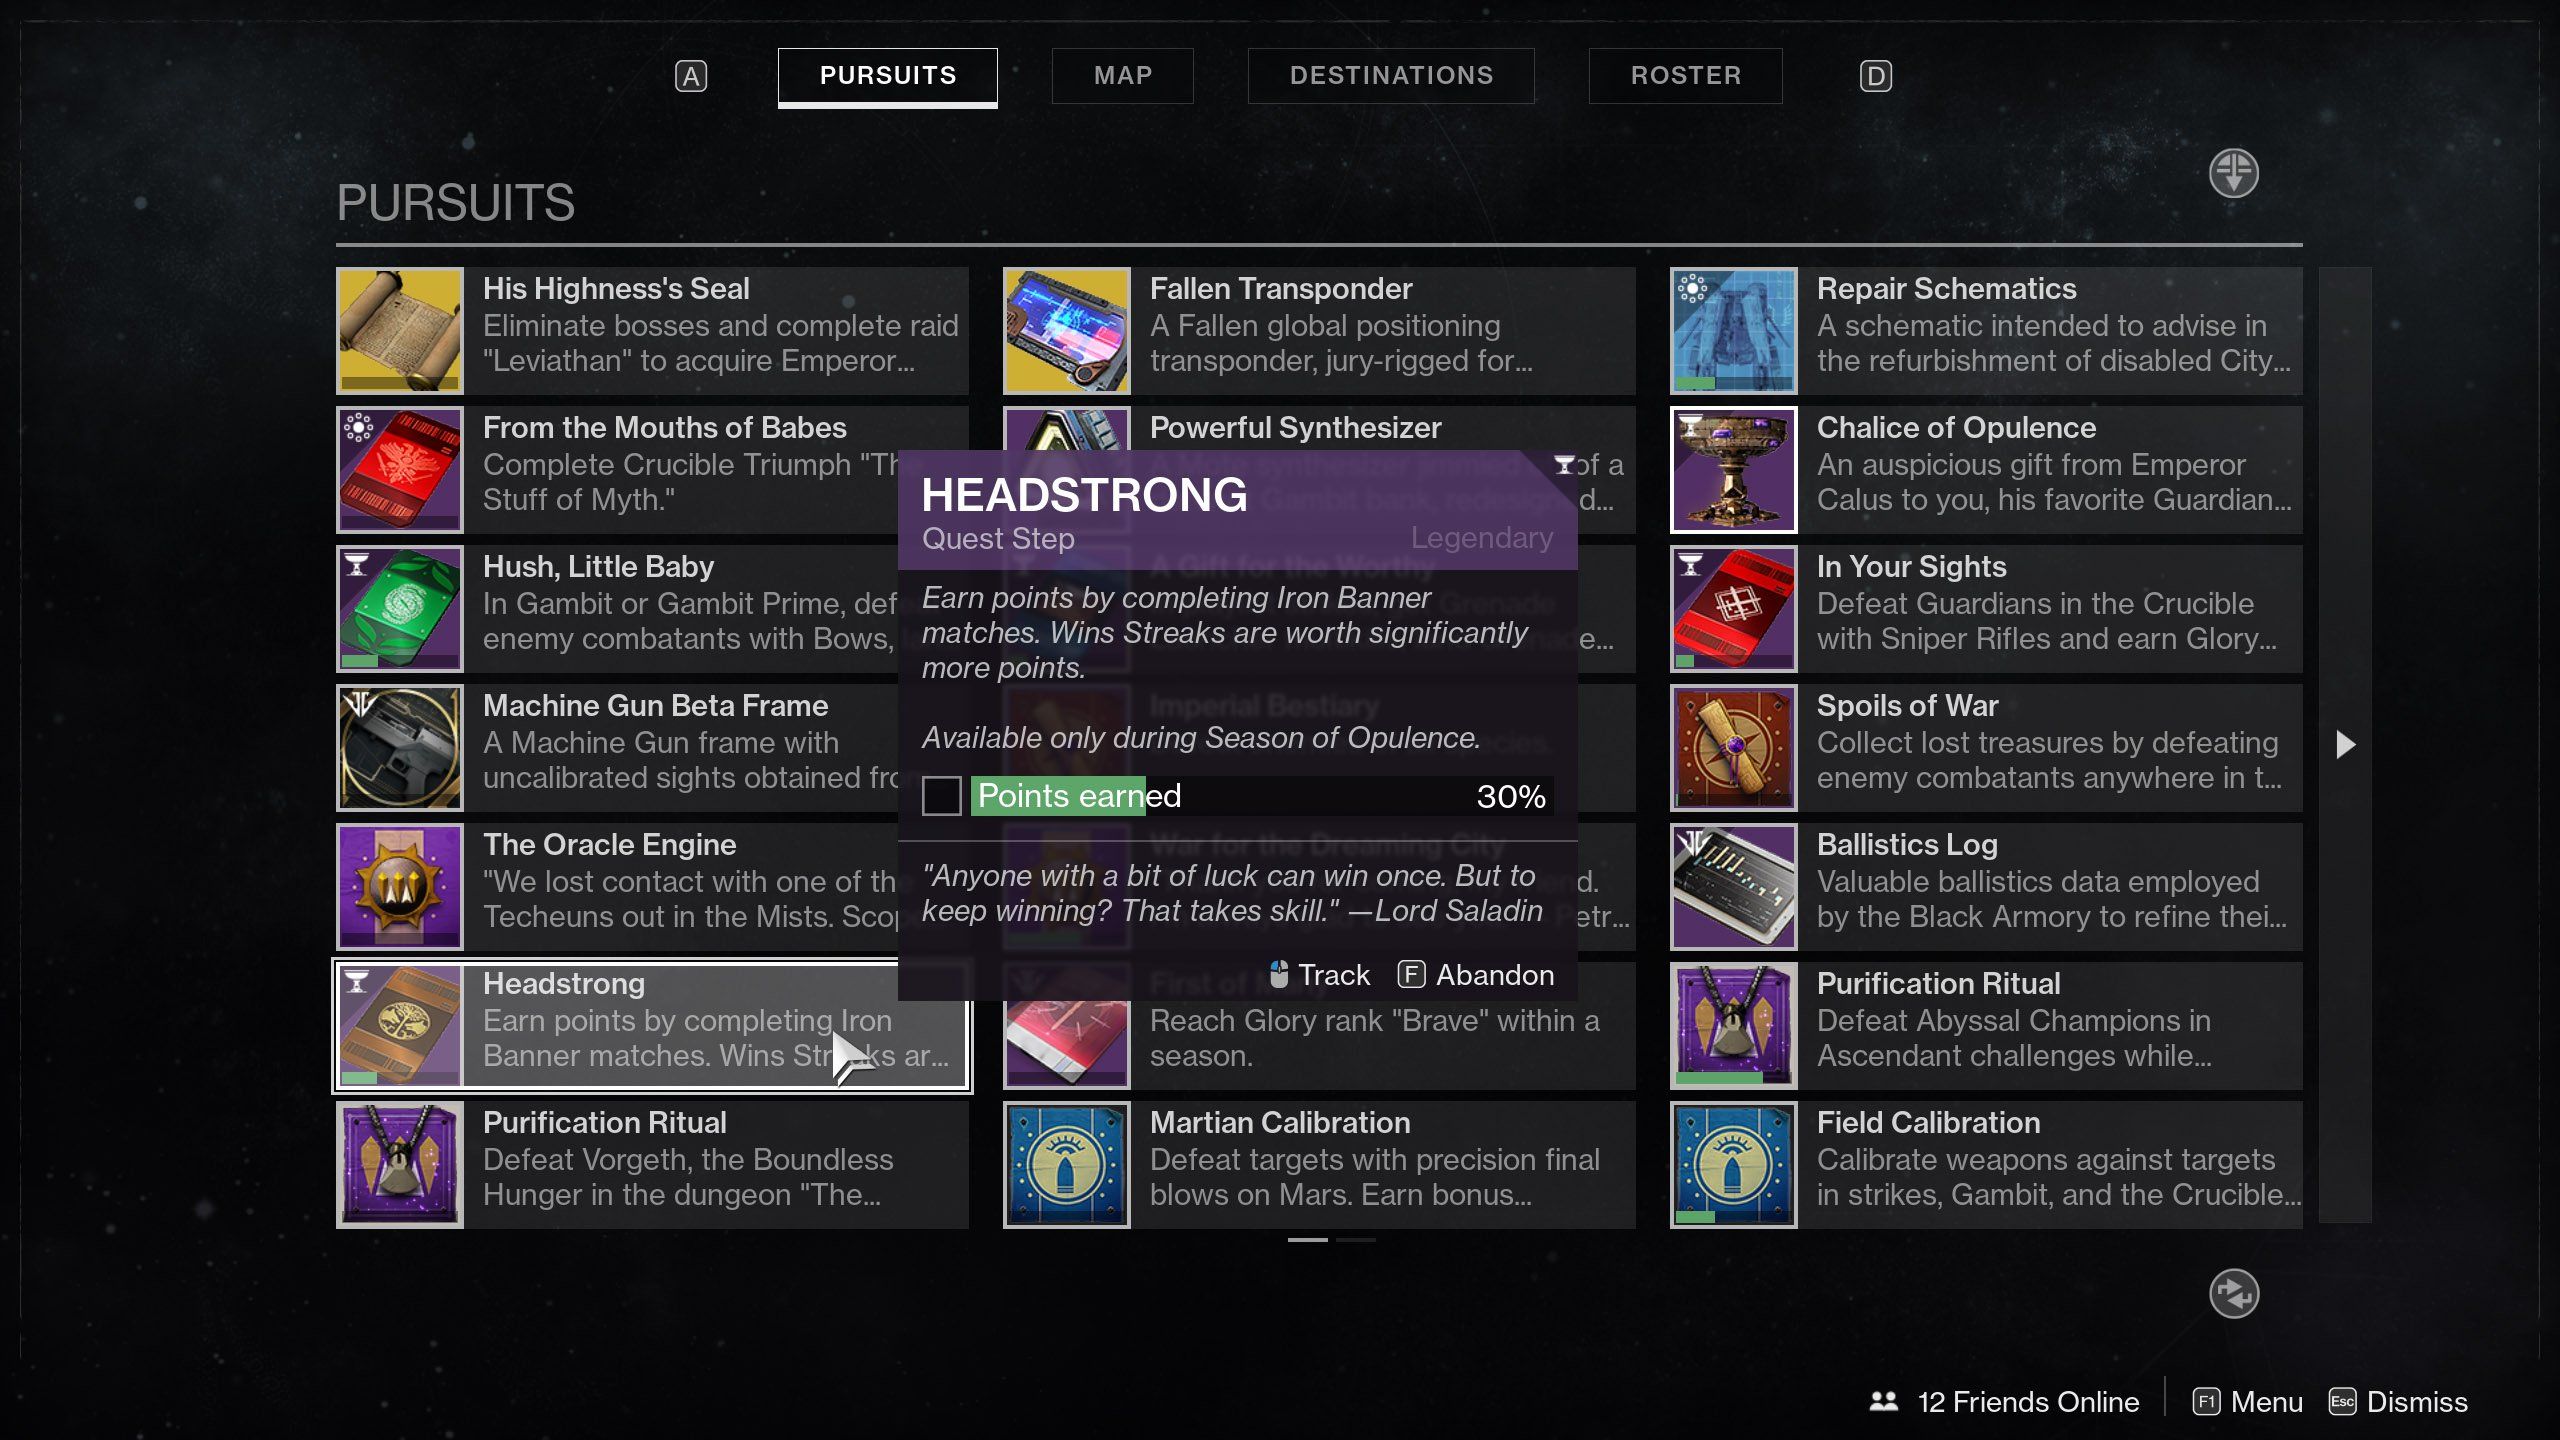 Headstrong Quest Step Destiny 2